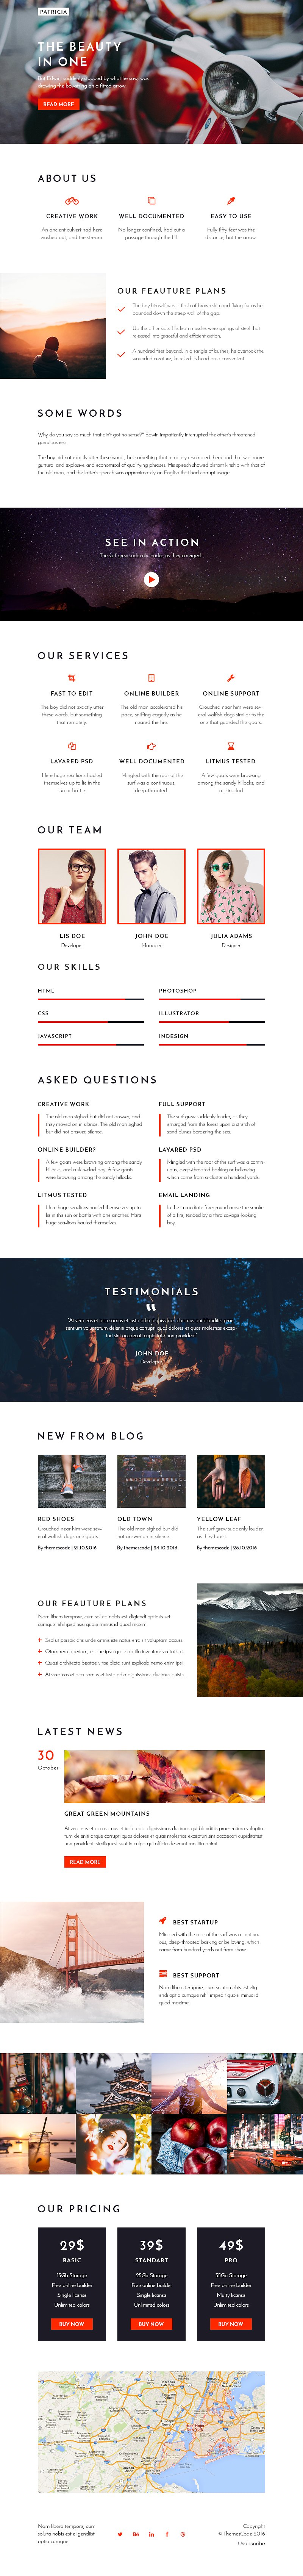 Patricia – Email template + Builder | Pinterest